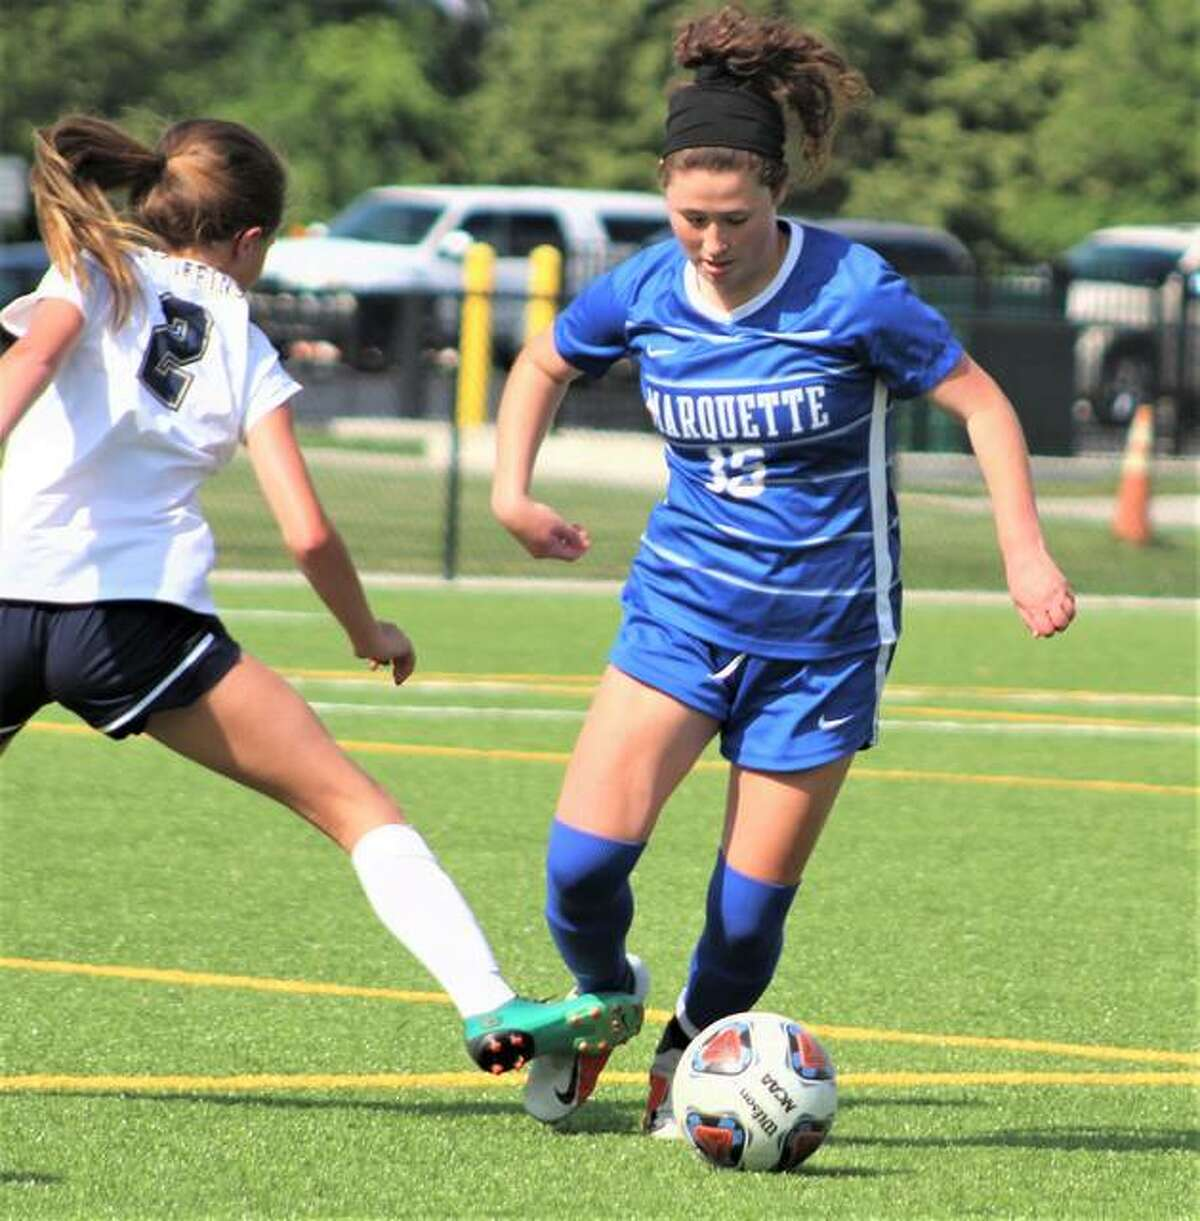 Marquette's Madelyn Smith (15) scored a goal and added three assists Tuesday night in the Explorers' 9-0 Class 1A sectional tournament semifinal win over Litchfield at Gordon Moore Park.